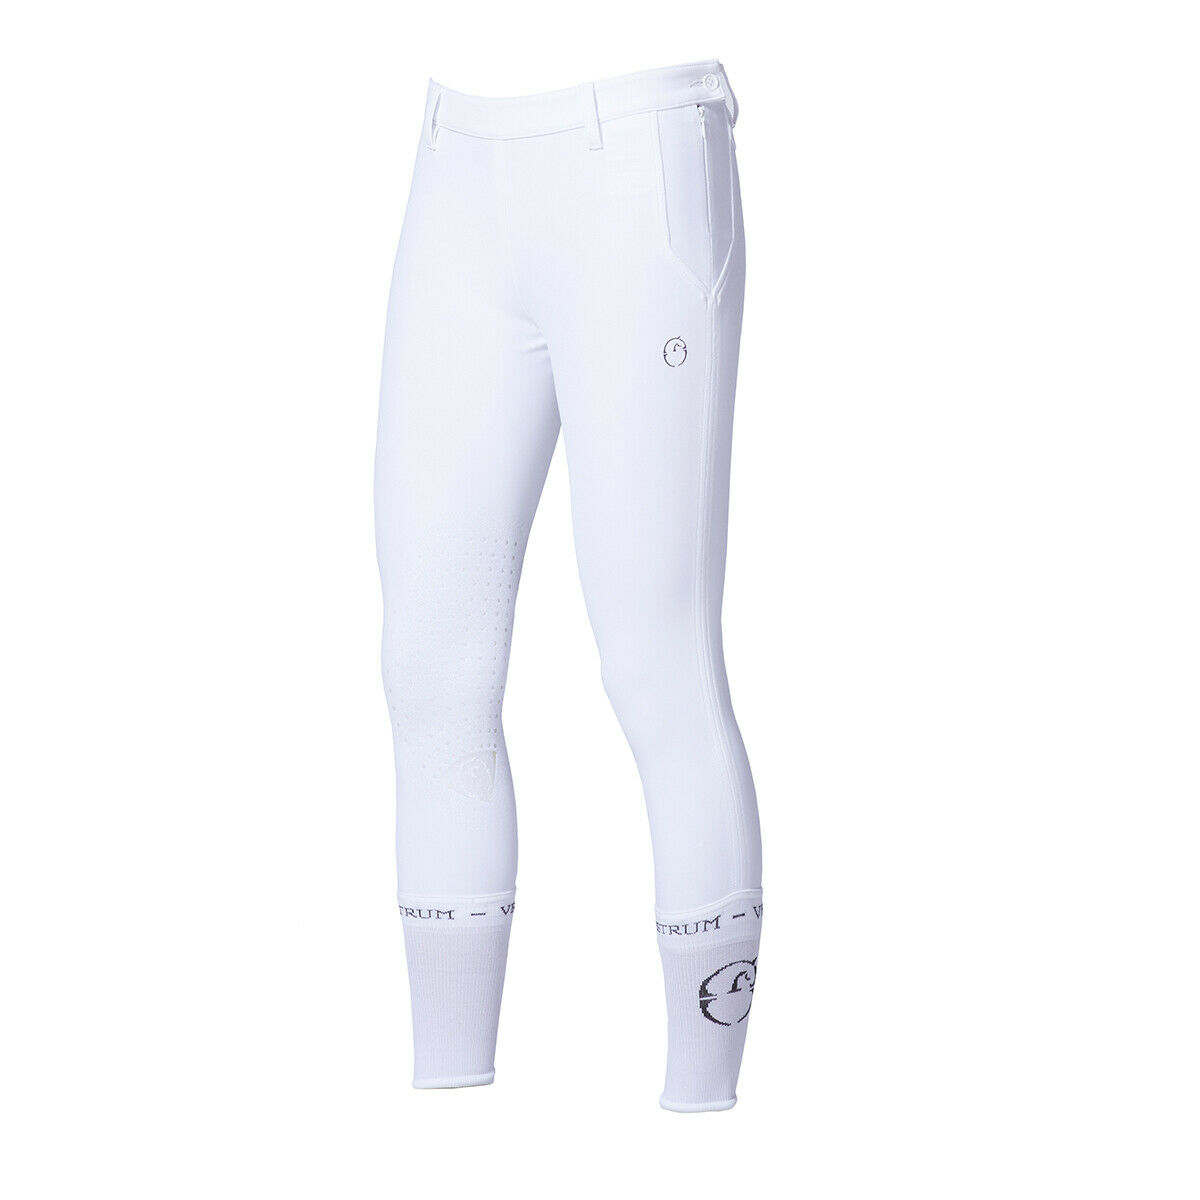 Vestrum Grenoble Breeches Full Gripping Ladies BN, see Animo Cavalleria Toscana